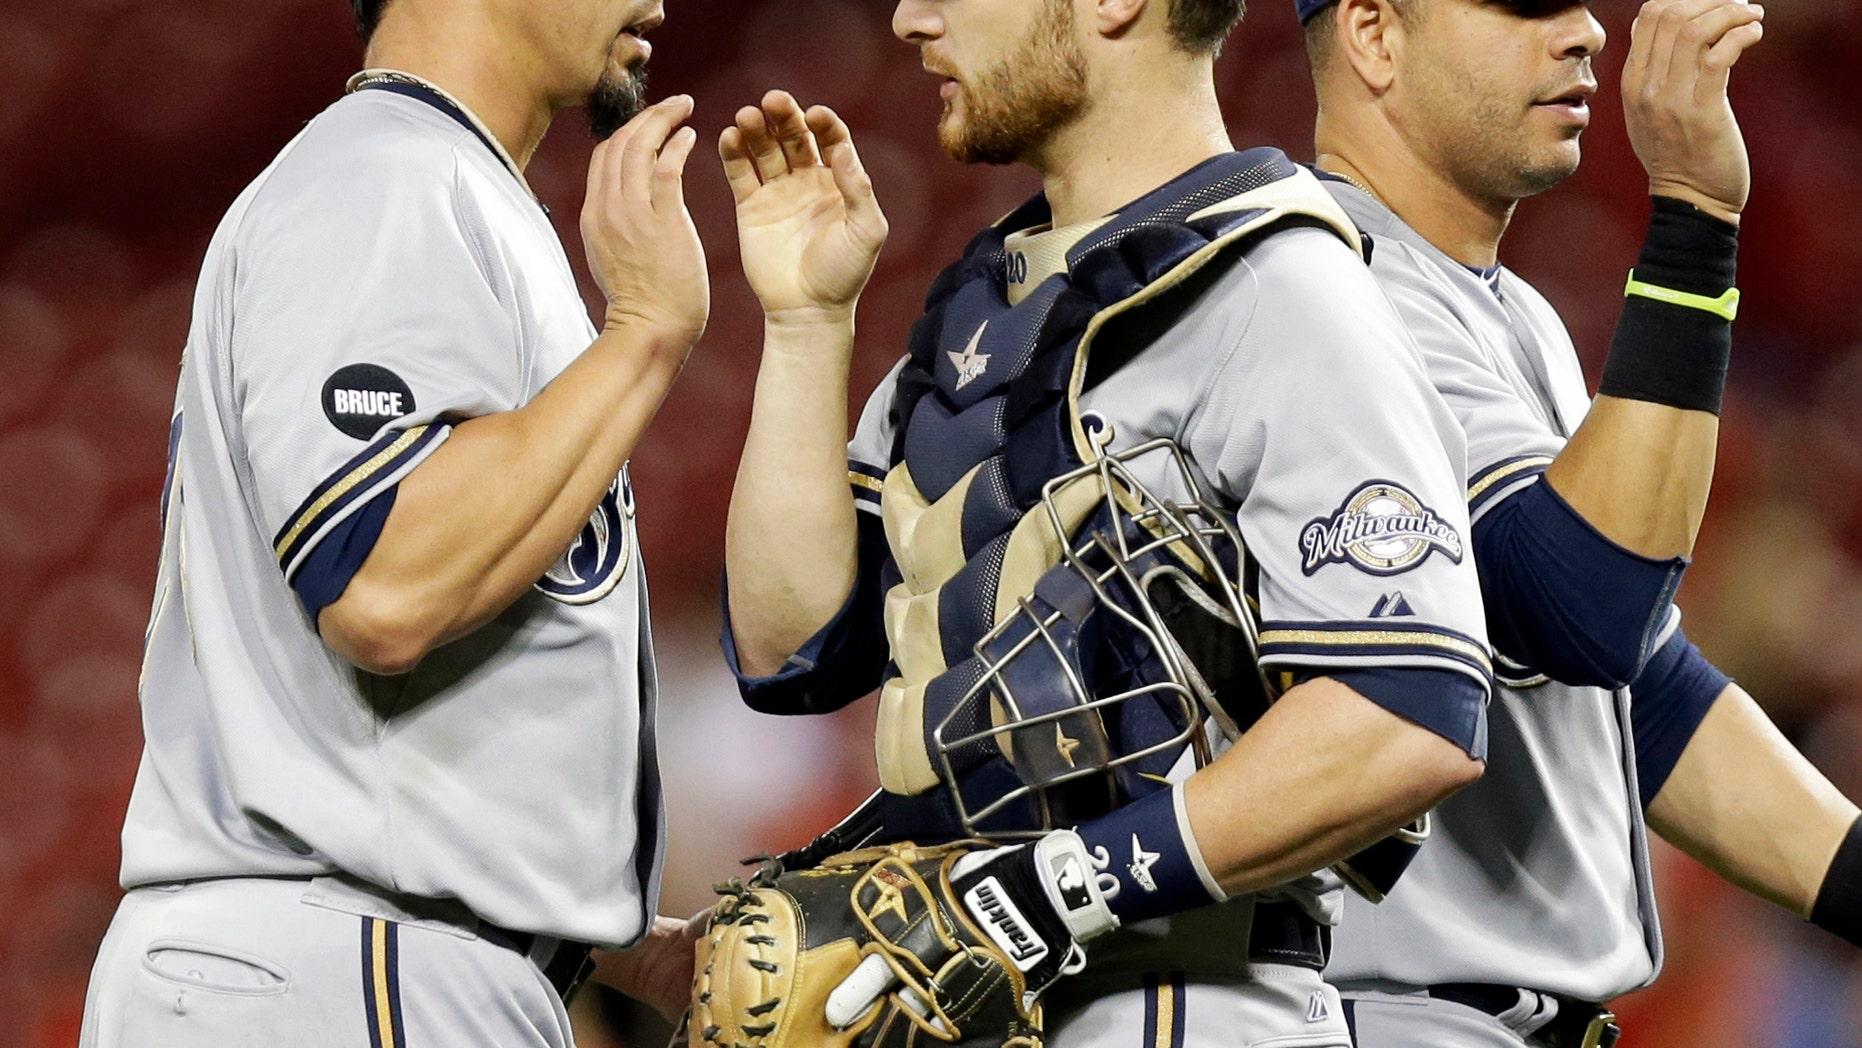 Sept. 24, 2014: In this file photo, Milwaukee Brewers starting pitcher Kyle Lohse, left, is congratulated by catcher Jonathan Lucroy, center, after the Brewers defeated the Cincinnati Reds 5-0 in a baseball game in Cincinnati.